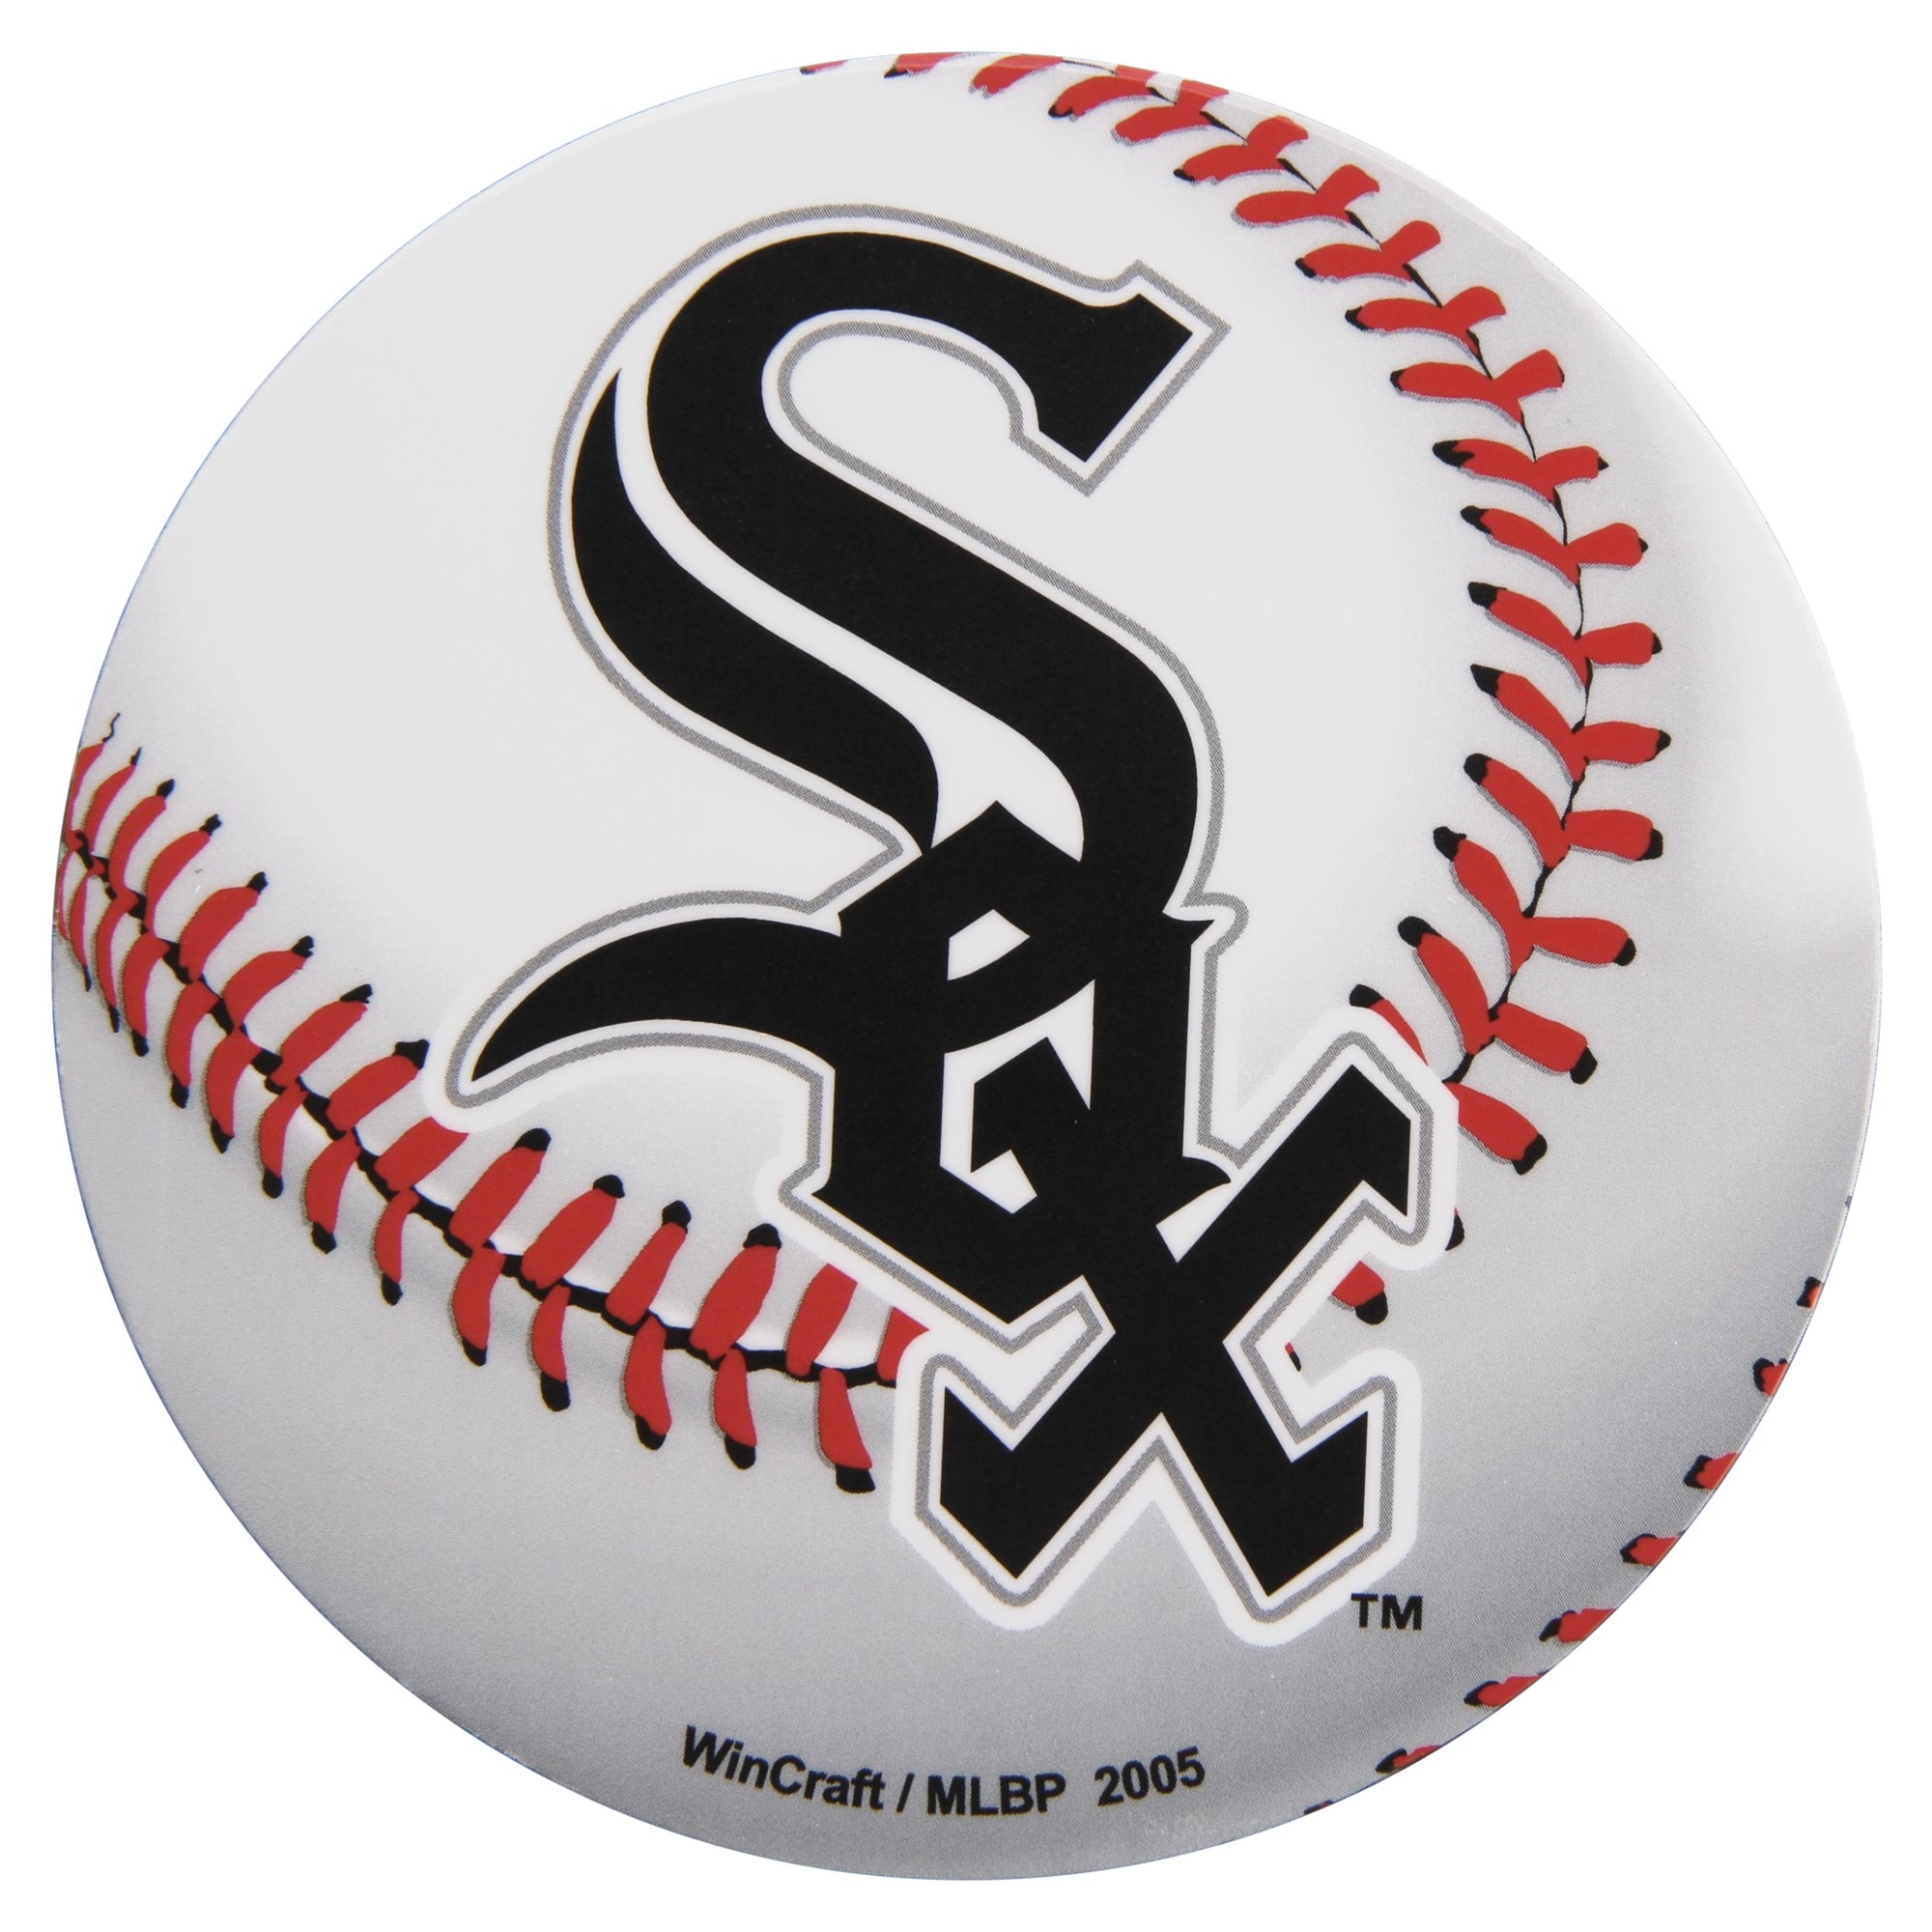 "Chicago White Sox WinCraft 5"" Die-Cut Car Magnet - No Size"